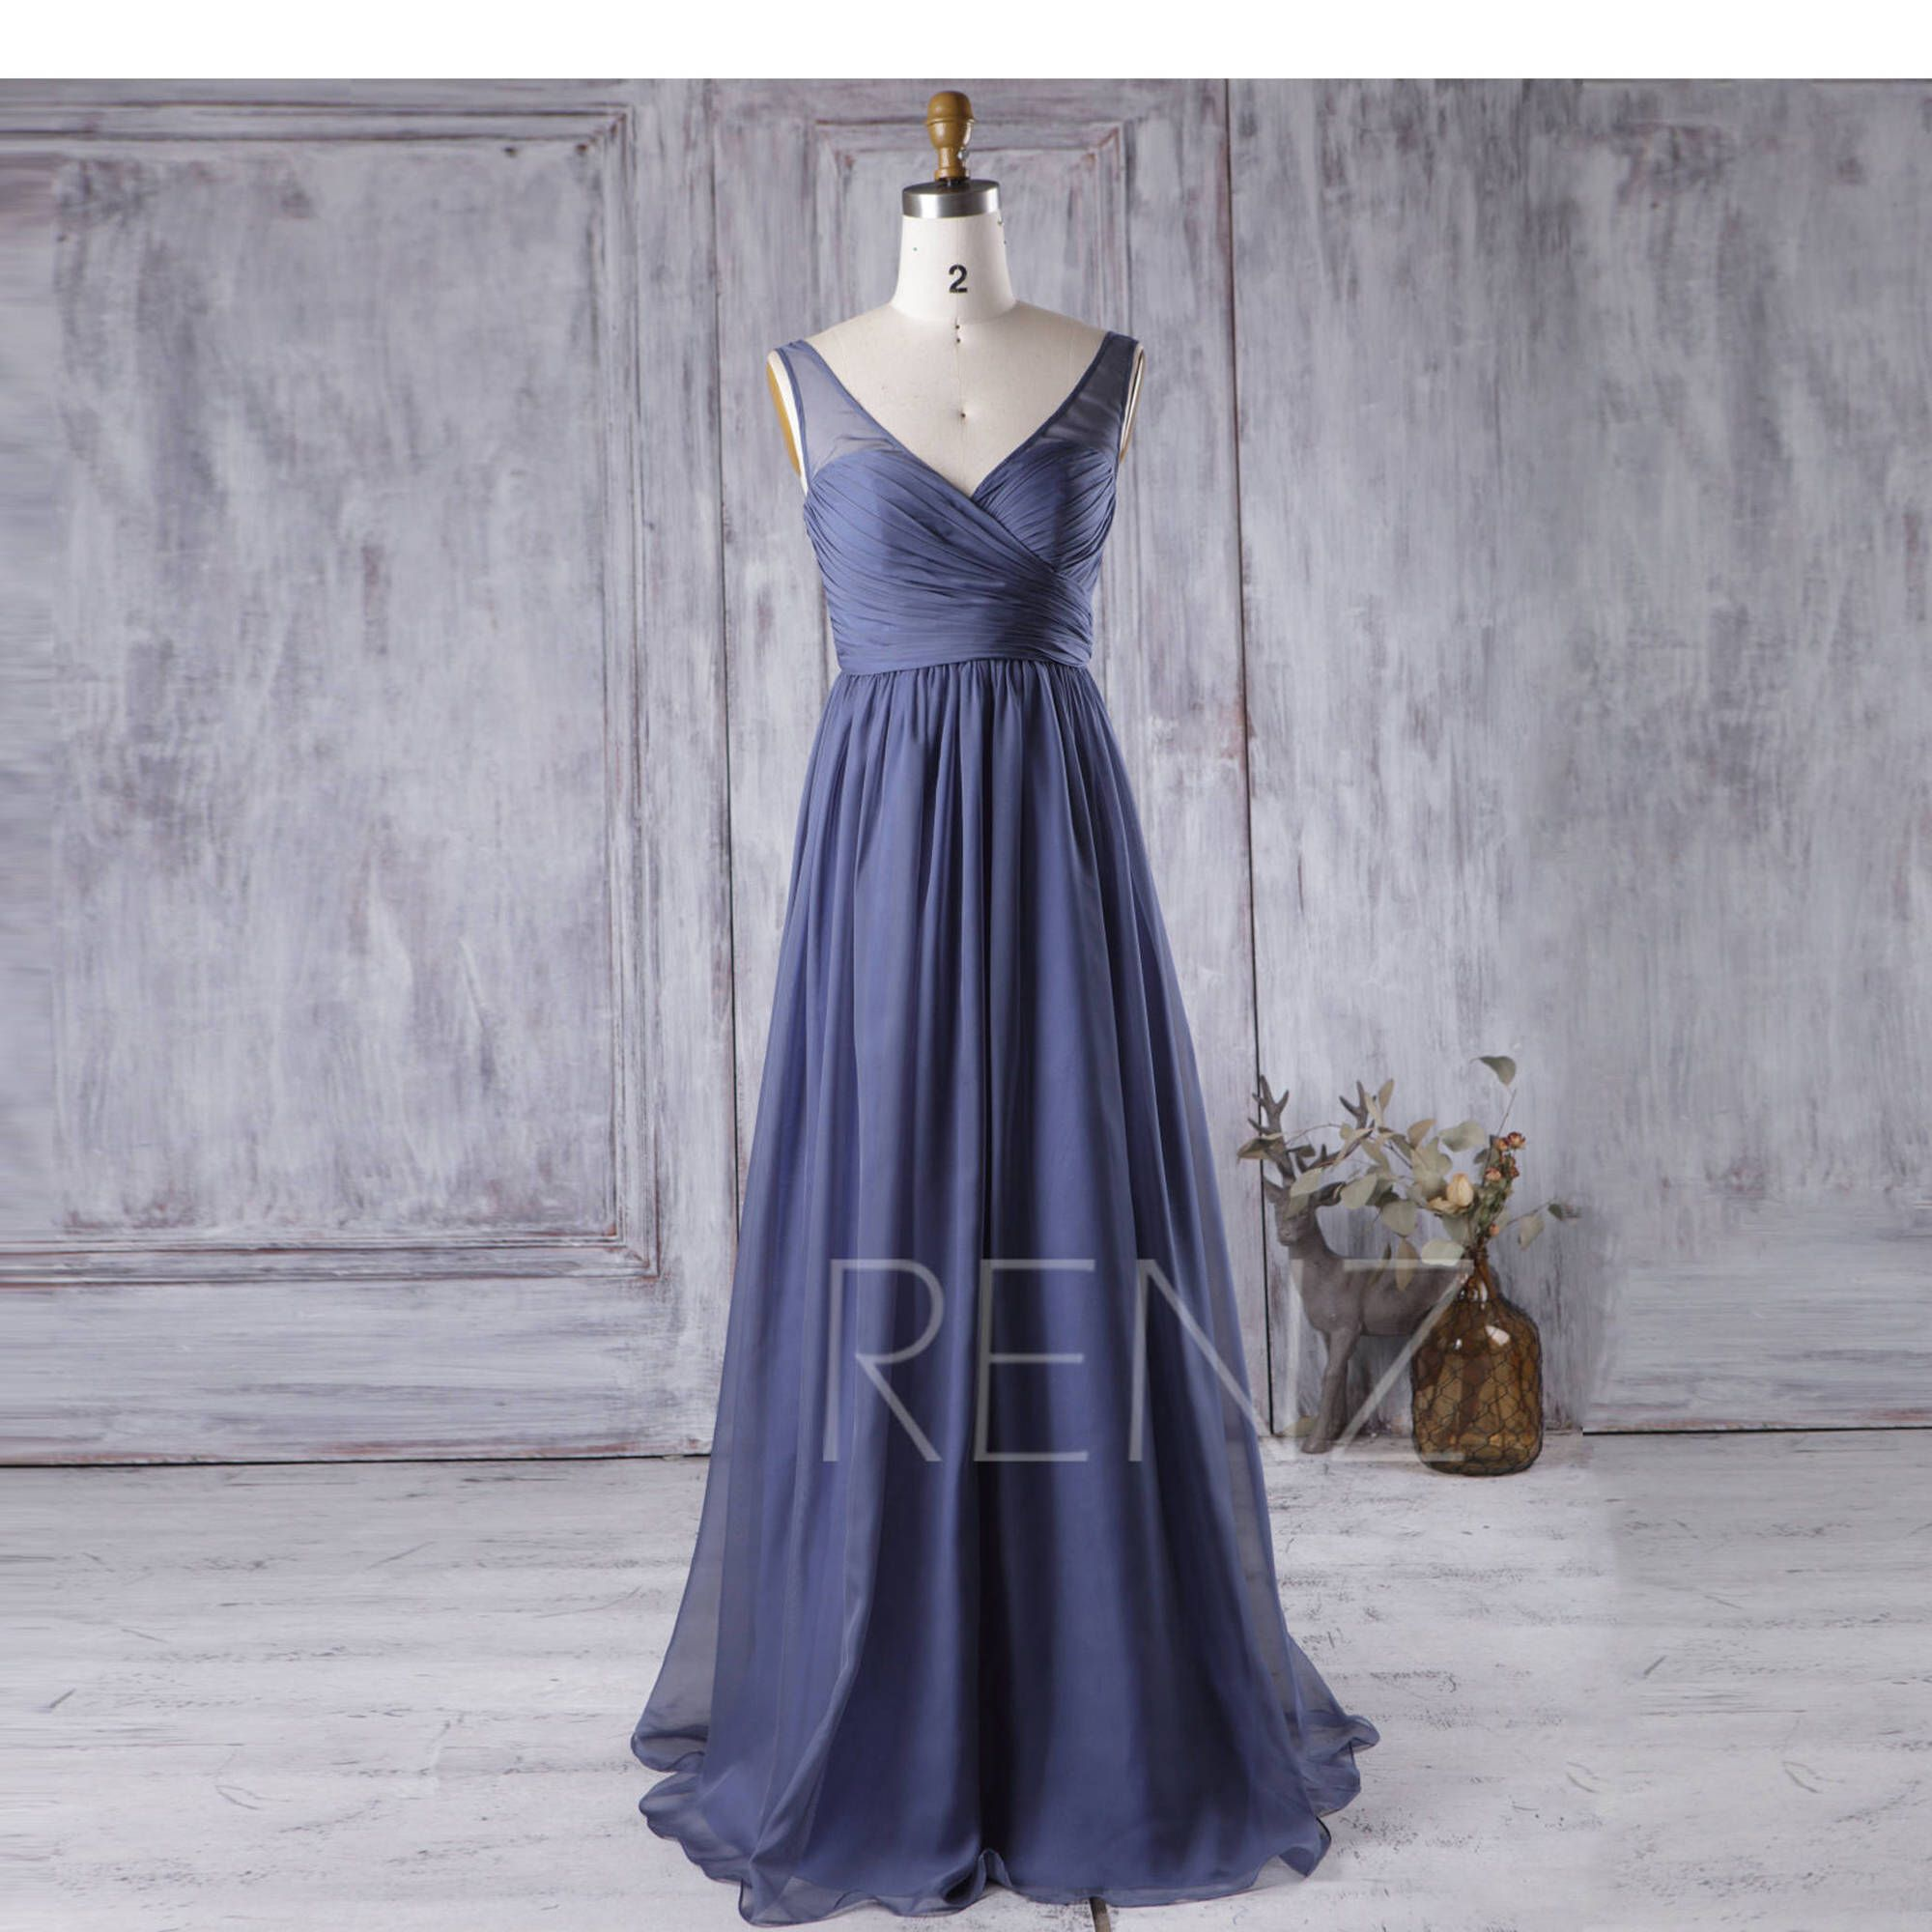 Dark steel blue bridesmaid dress v neck chiffon wedding dress long